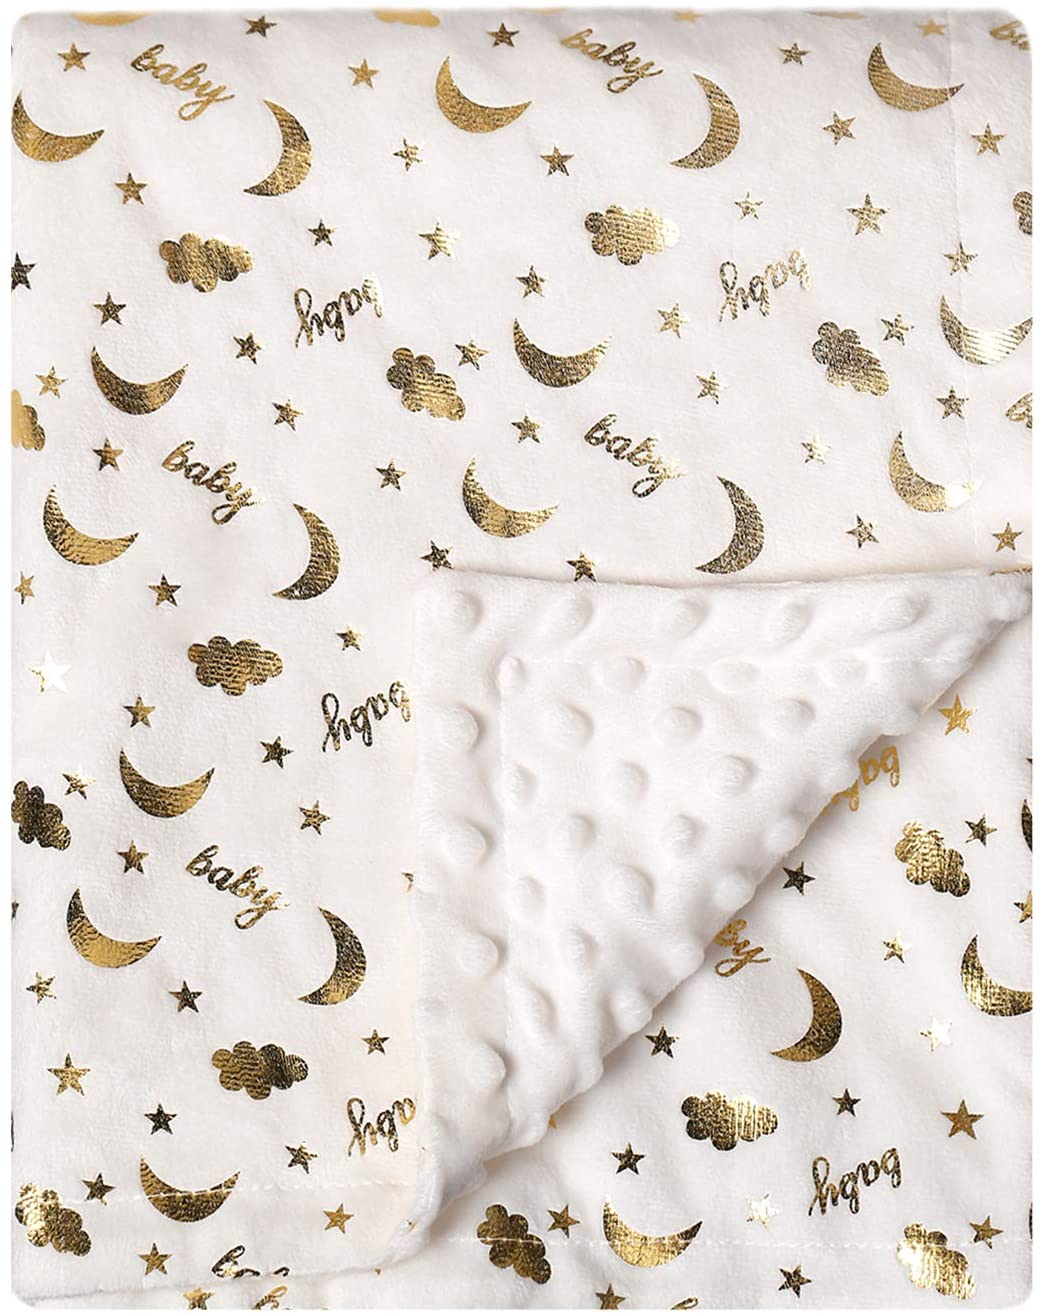 BORITAR Baby Blanket Super Soft Minky Blanket with Dotted Backing for Boys and Girls, Receiving Toddler Blanket with Golden Foil Printed 30 x 40 Inch(75x100cm)